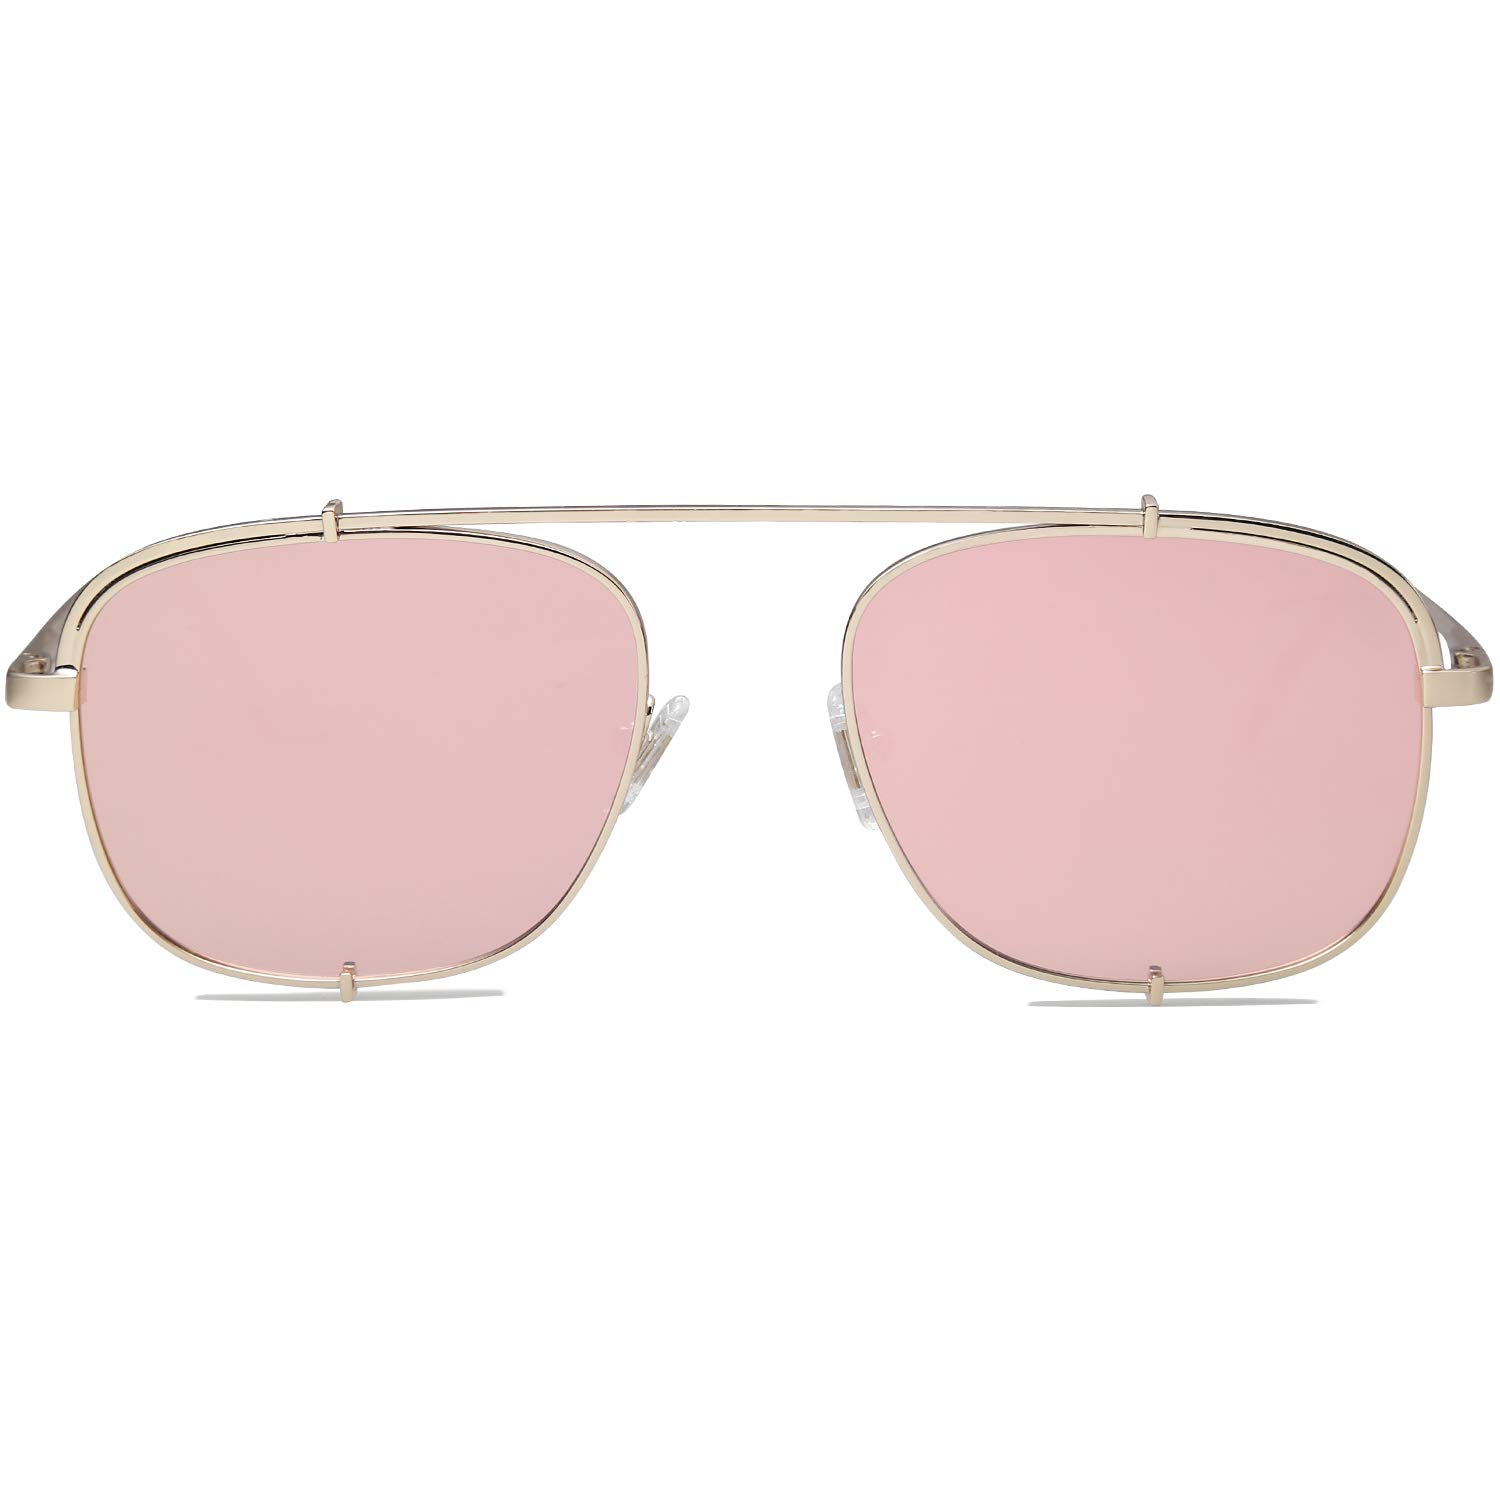 SOJOS Small Square Polarized Sunglasses with Spring Hinges Mirrored Lens SUNRAYS SJ1103 with Gold Frame/Pink Mirrored Polarized Lens by SOJOS